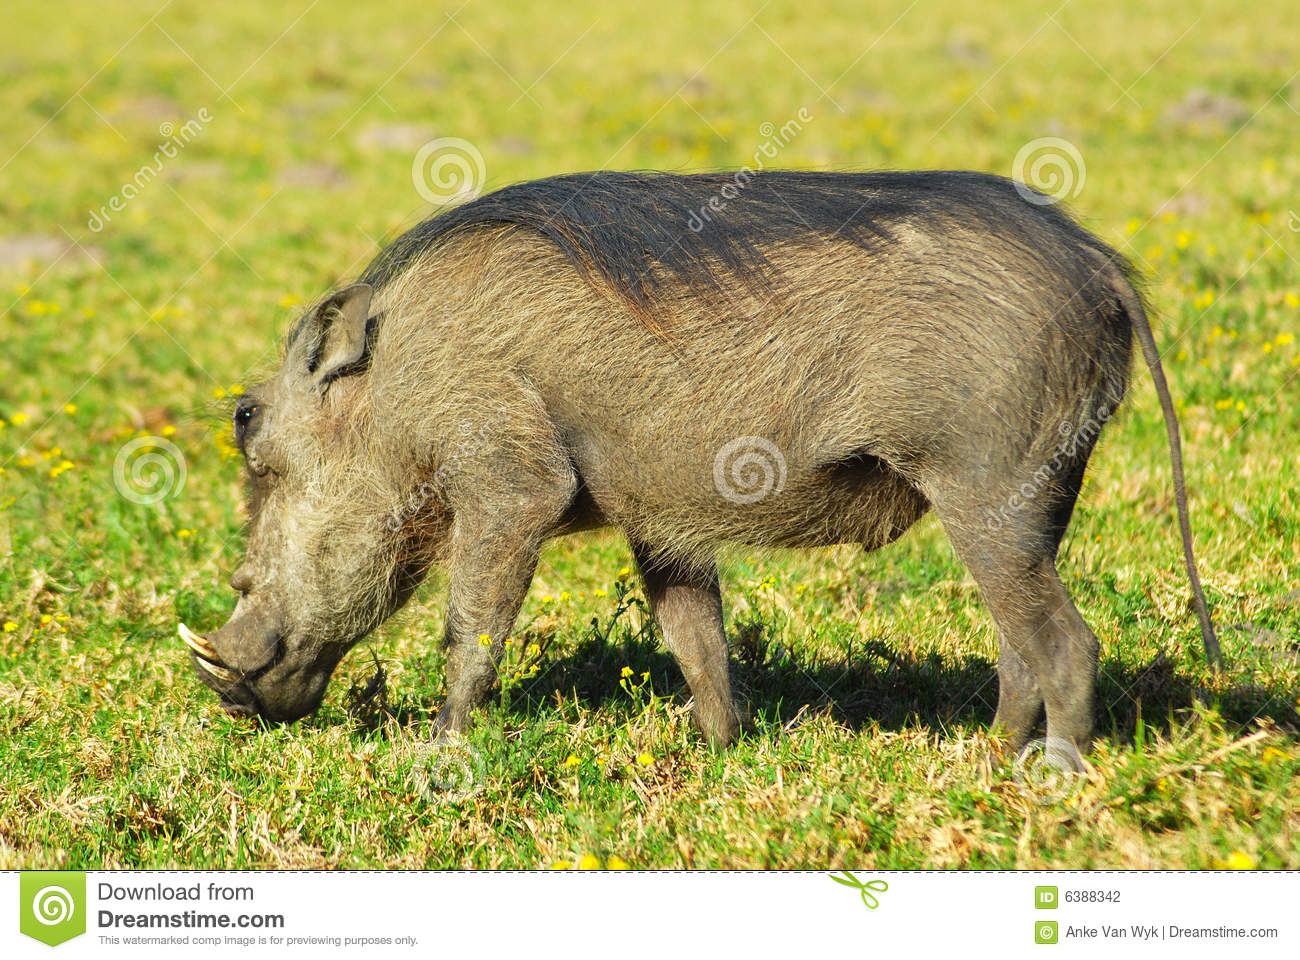 African Animal Stock Photography  Image 6388342